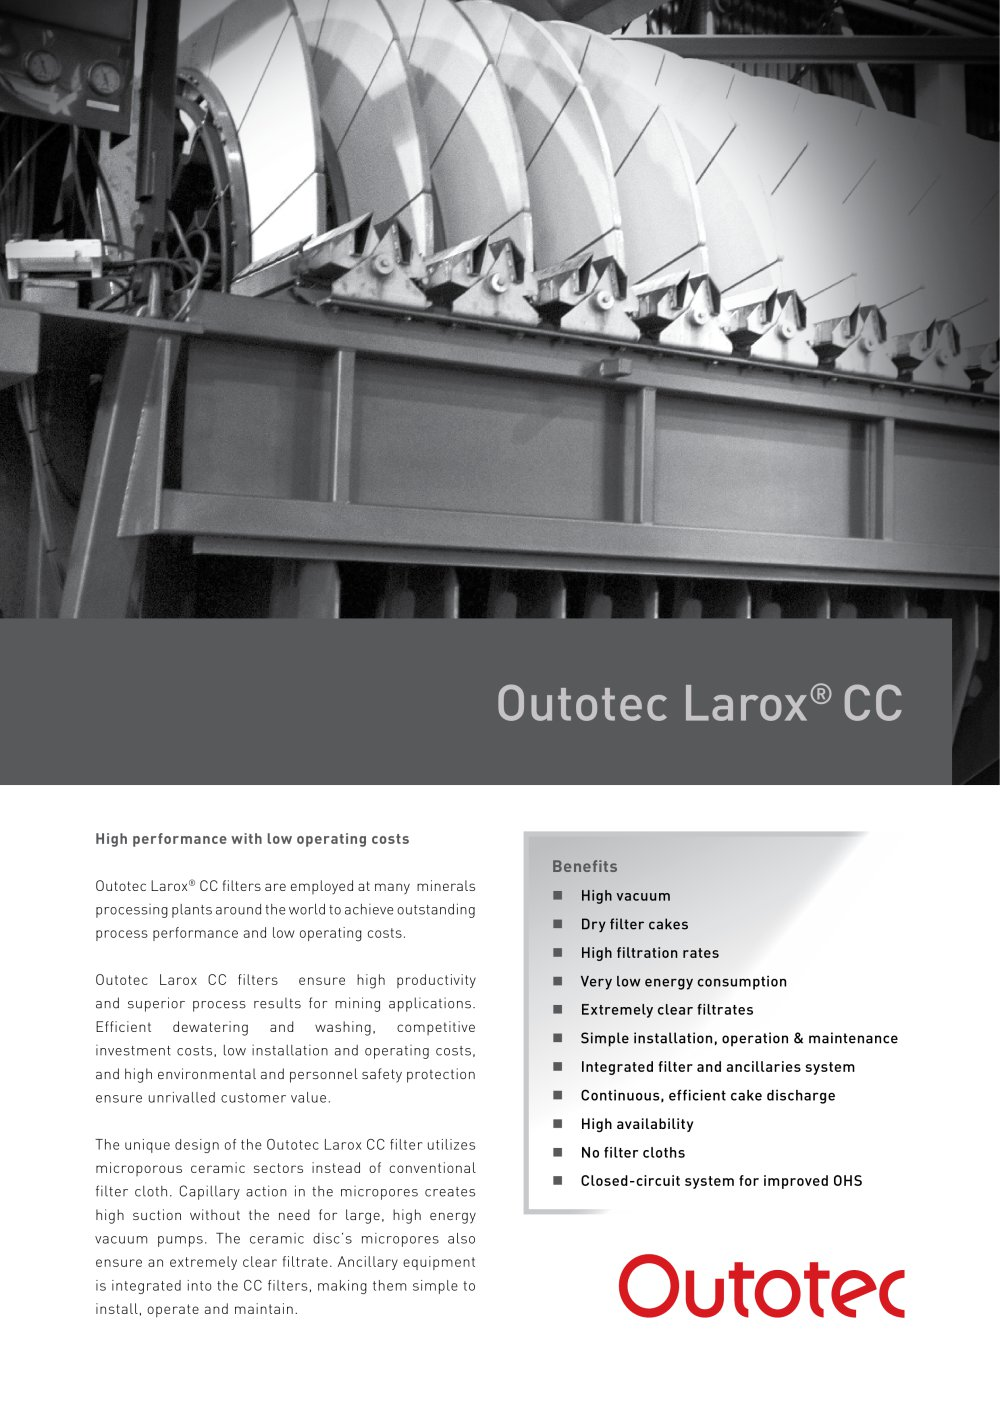 Outotec Larox Cc Pdf Catalogs Technical Schematic Diagram Was Created For Installing The Vacuum Pump 1 4 Pages